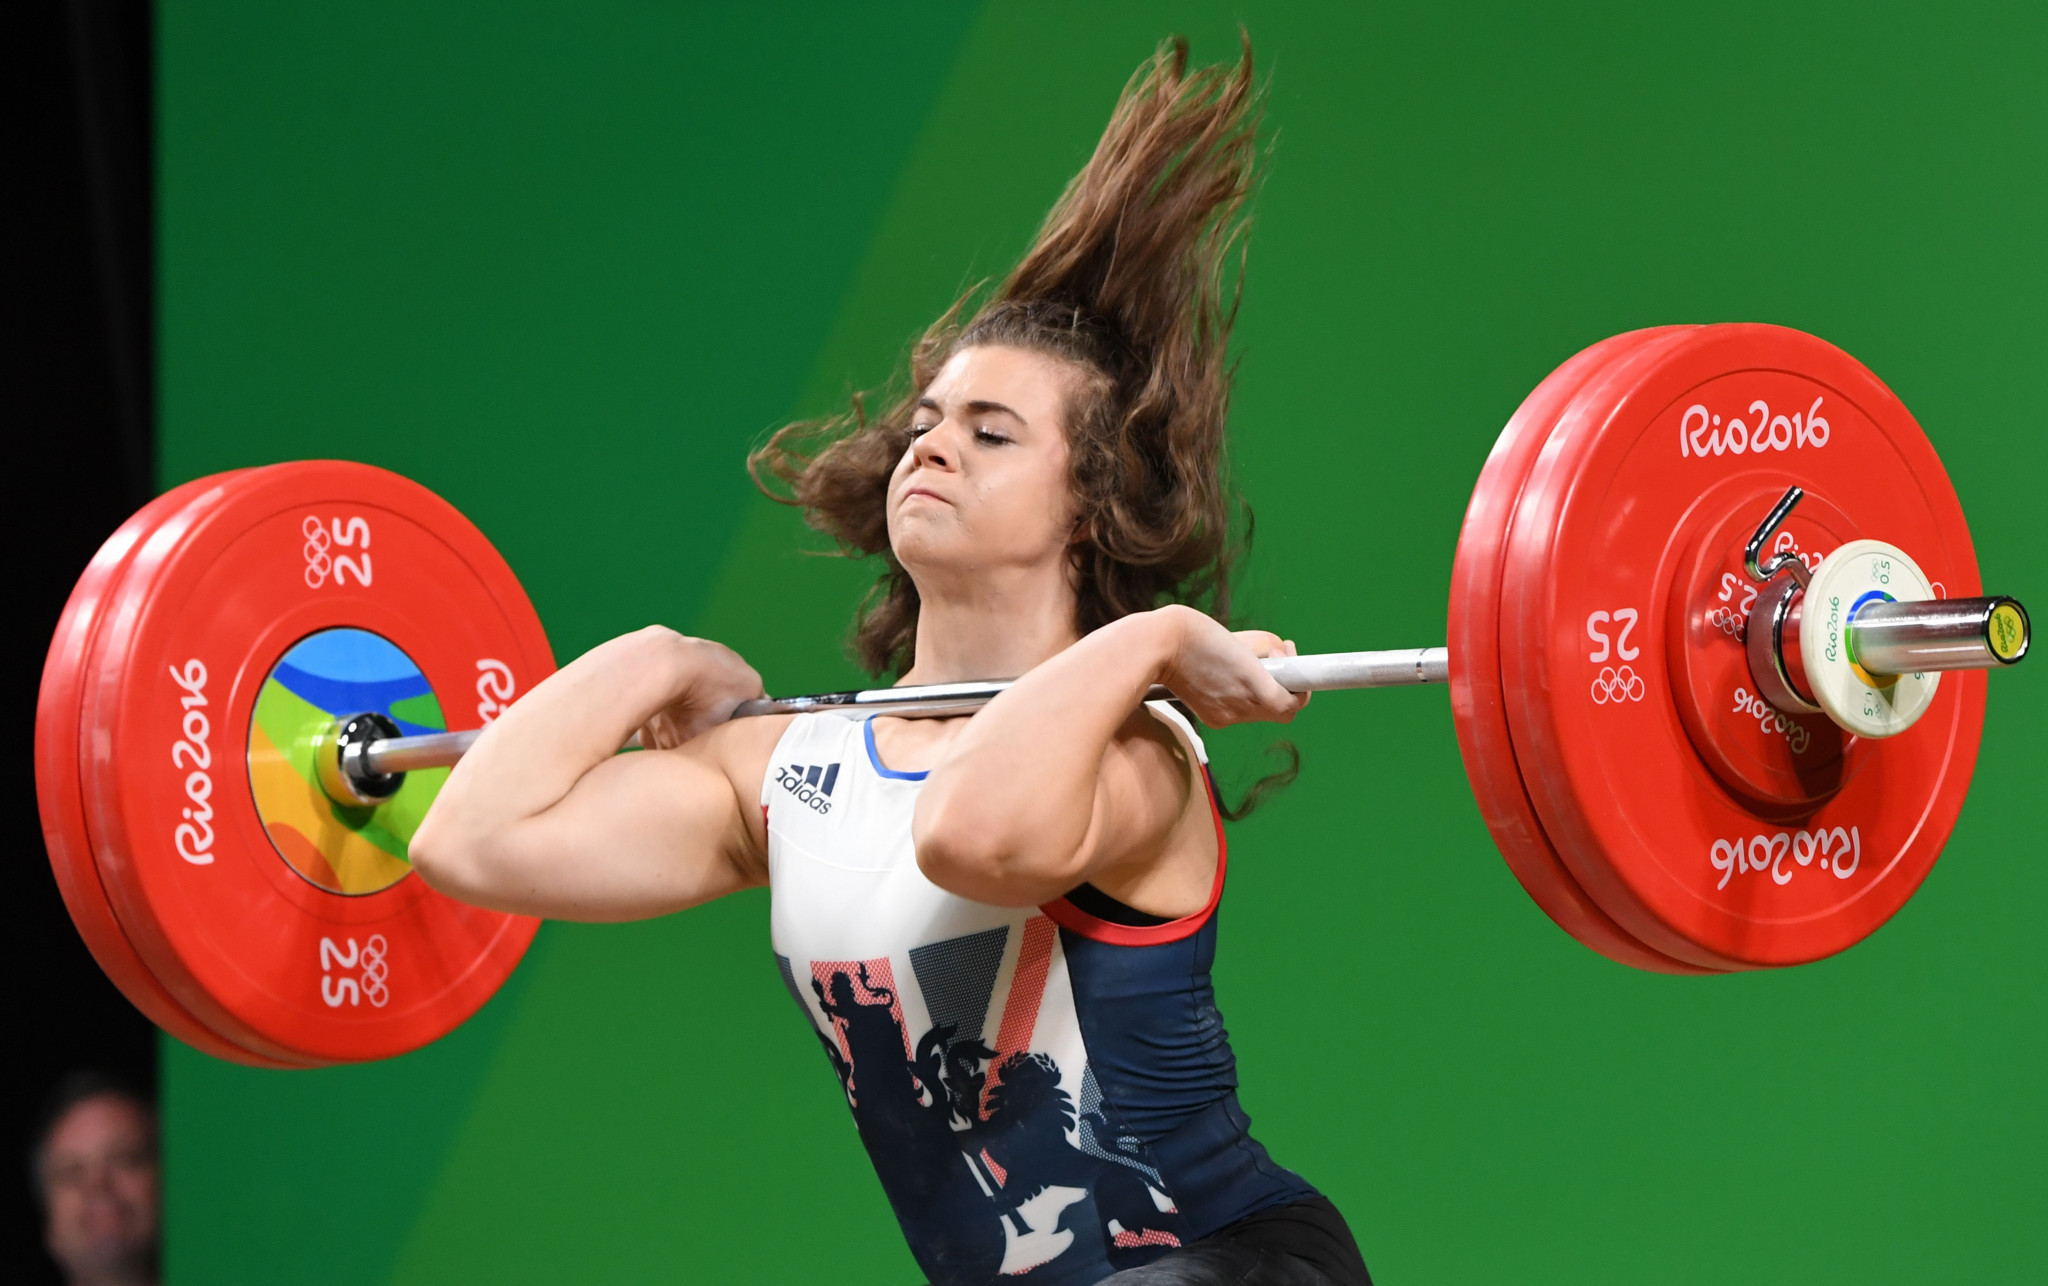 Rebekah Tiler has given up weightlifting after funding was cut ©Getty Images